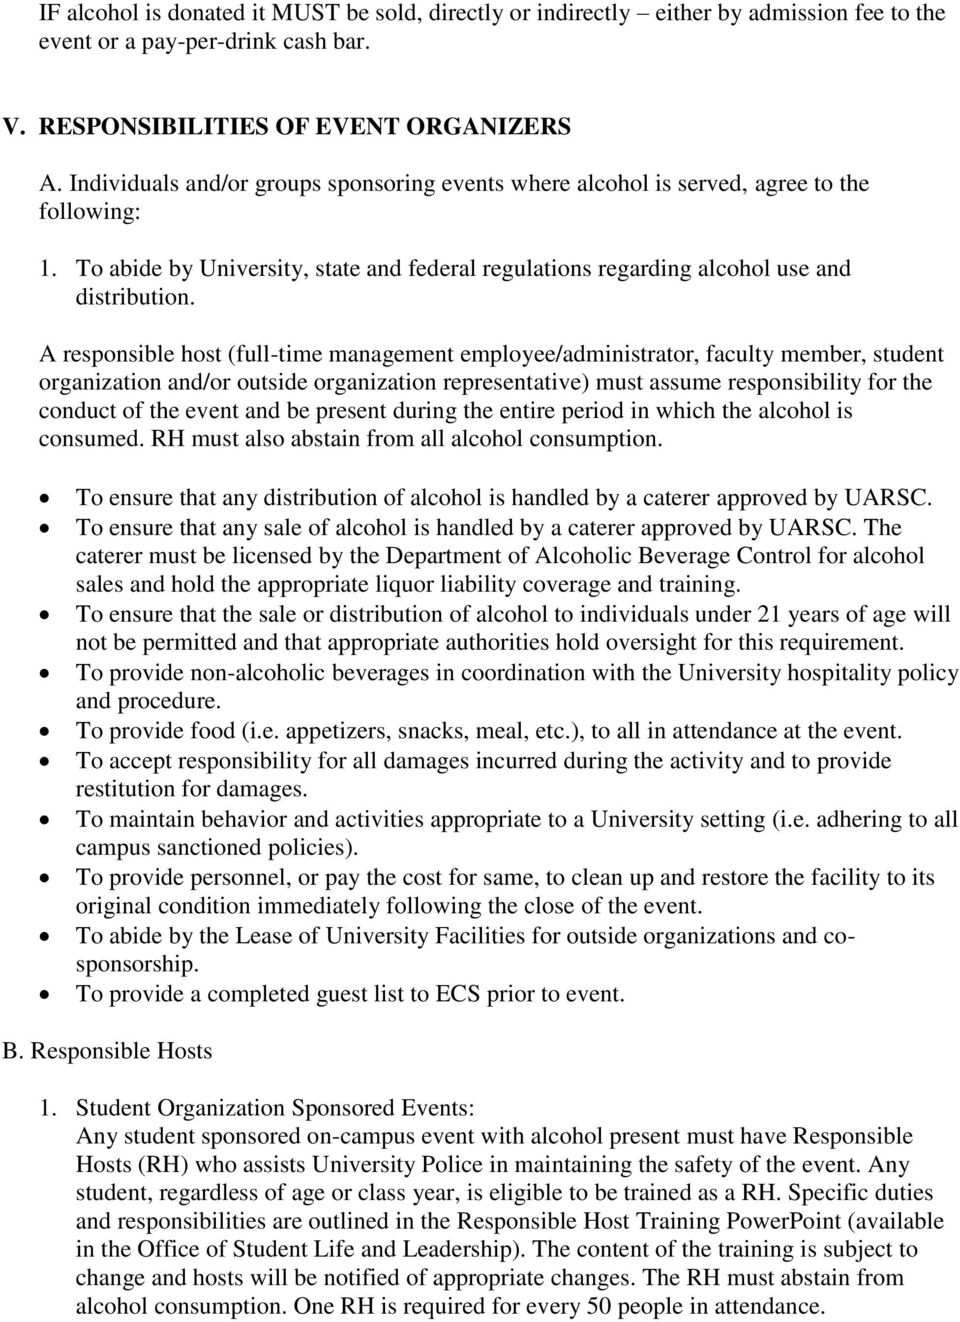 A responsible host (full-time management employee/administrator, faculty member, student organization and/or outside organization representative) must assume responsibility for the conduct of the